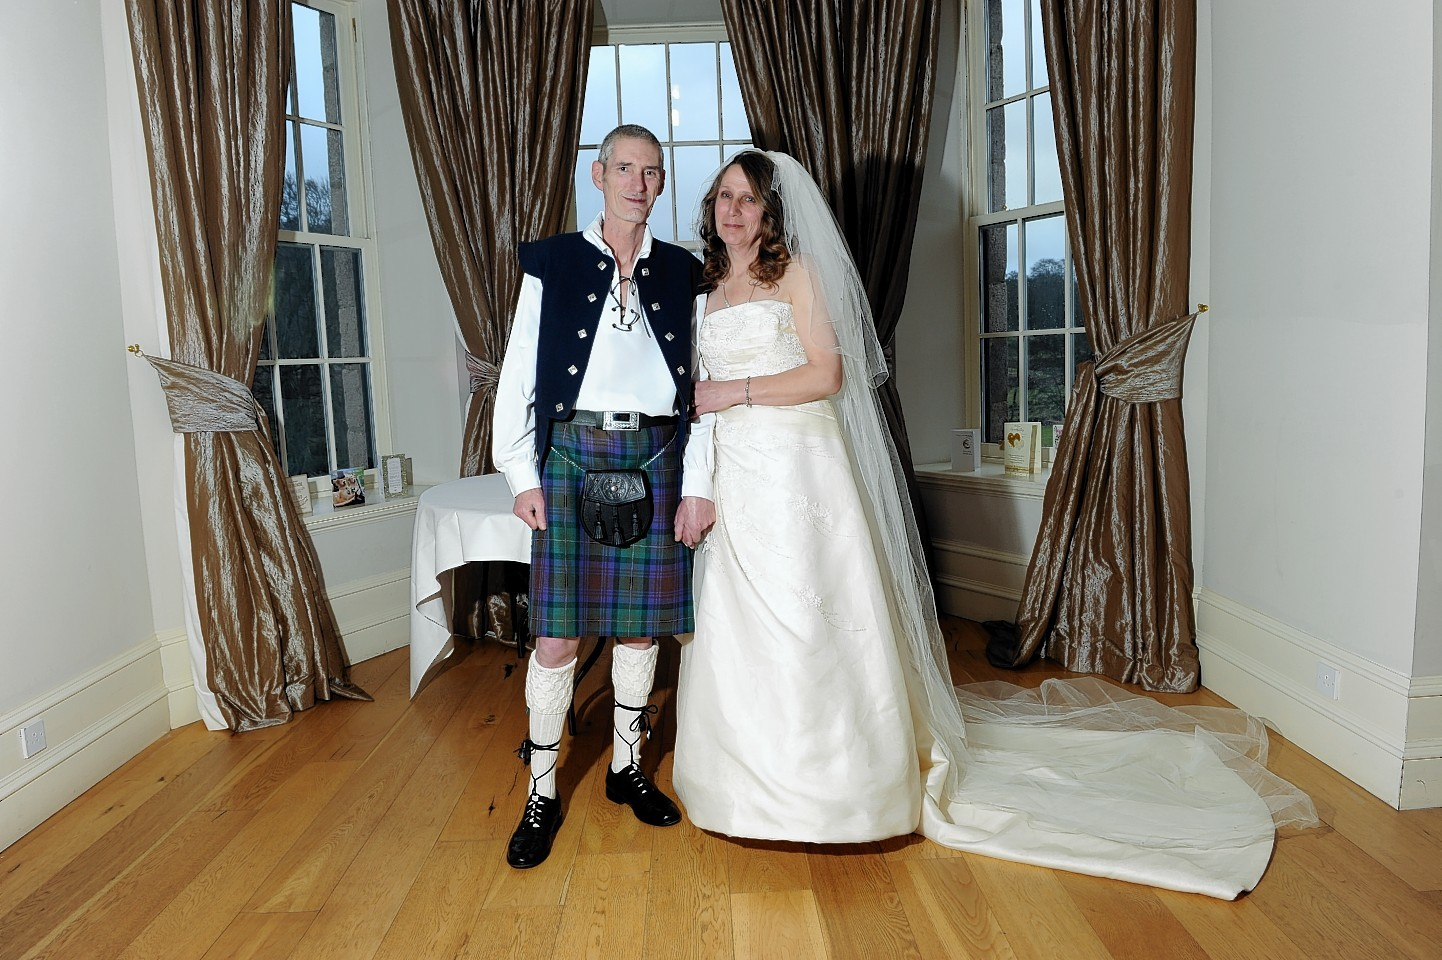 Keith and Pauline on their wedding day